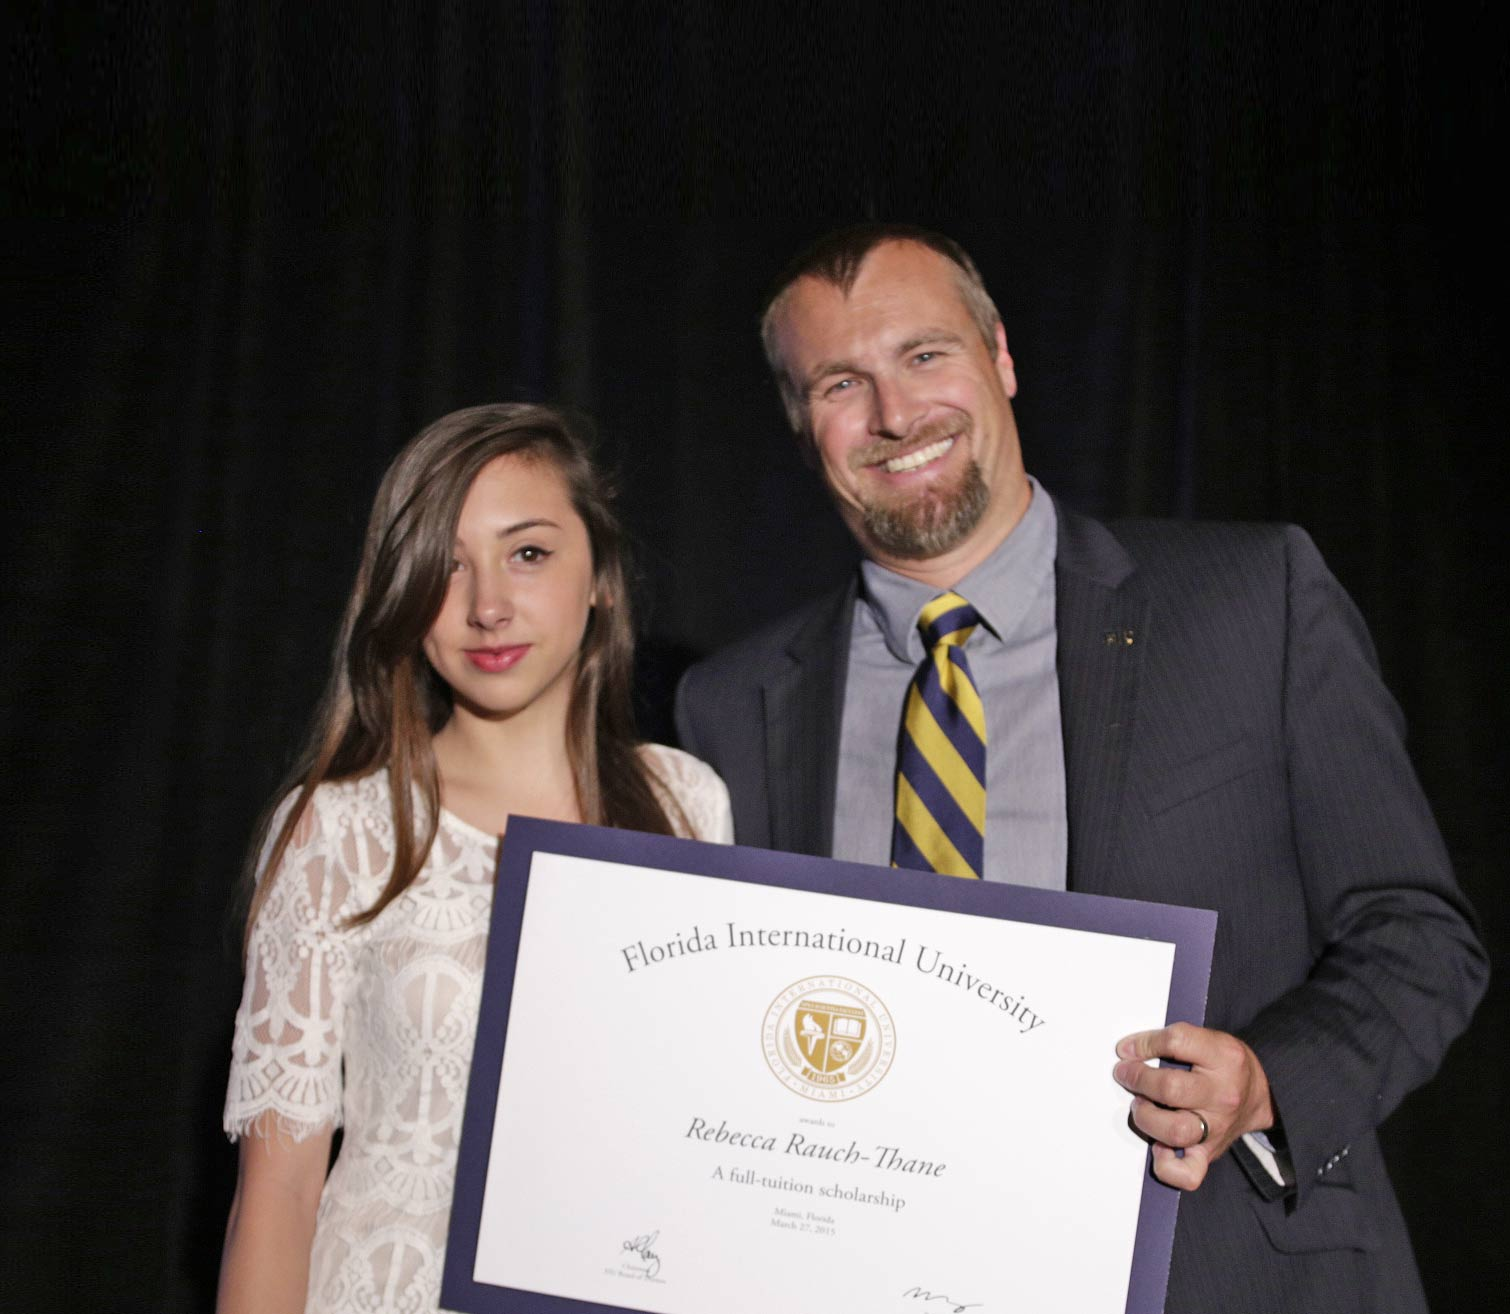 Miami Beach Senior High School freshman Rebecca Rauch-Thane was awarded a scholarship to FIU during the Miami Beach Community Resiliency Summit in March.